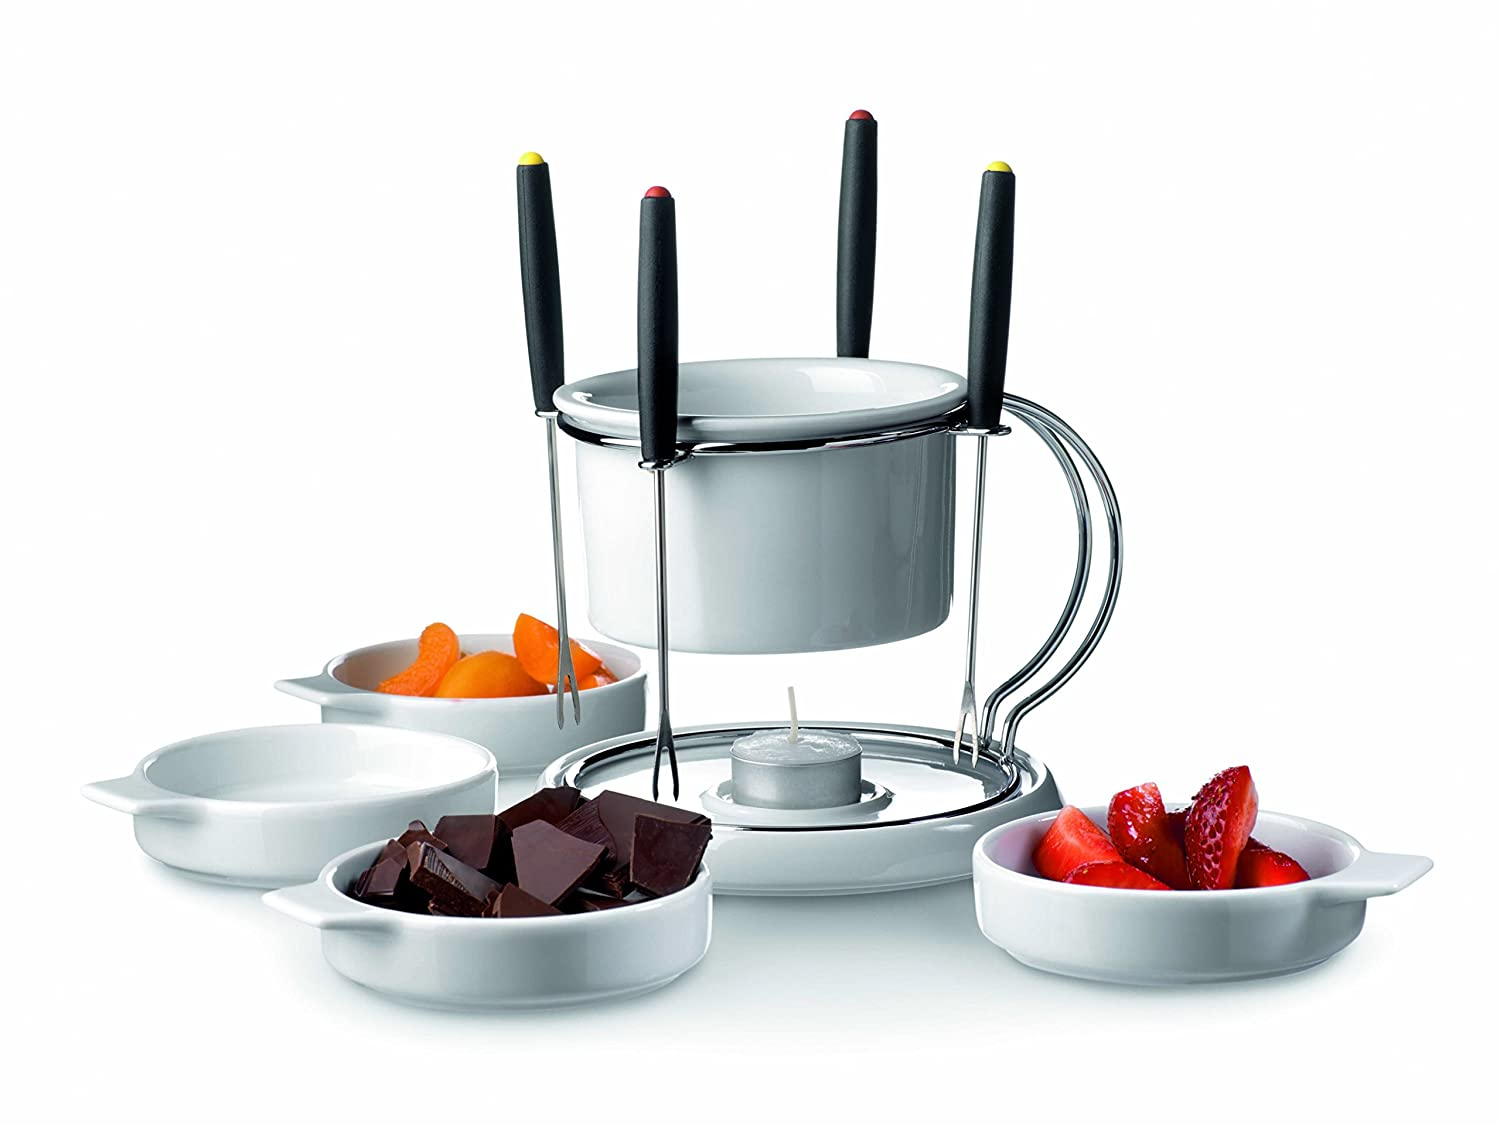 Domestic 11-Piece Chocolate Fondue Set Josef Mäser GmbH 921396